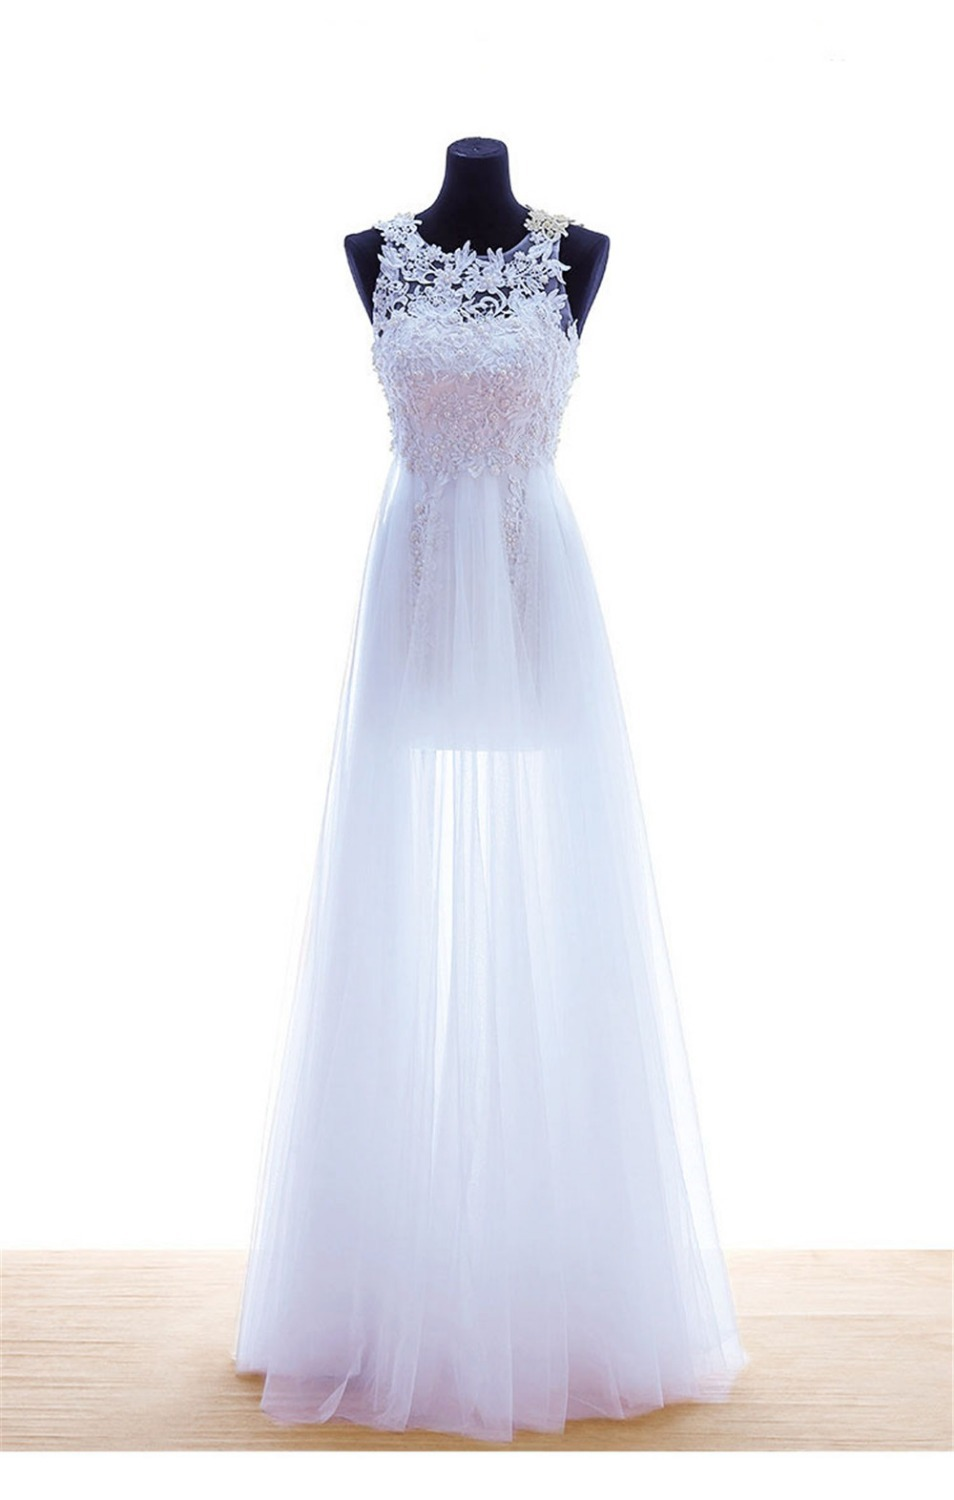 Sexy White Prom Dresses 2015 Long Tulle Beaded Lace A Line Wedding Party Dress Evening Gowns Abendkleider Vestidos De Baile